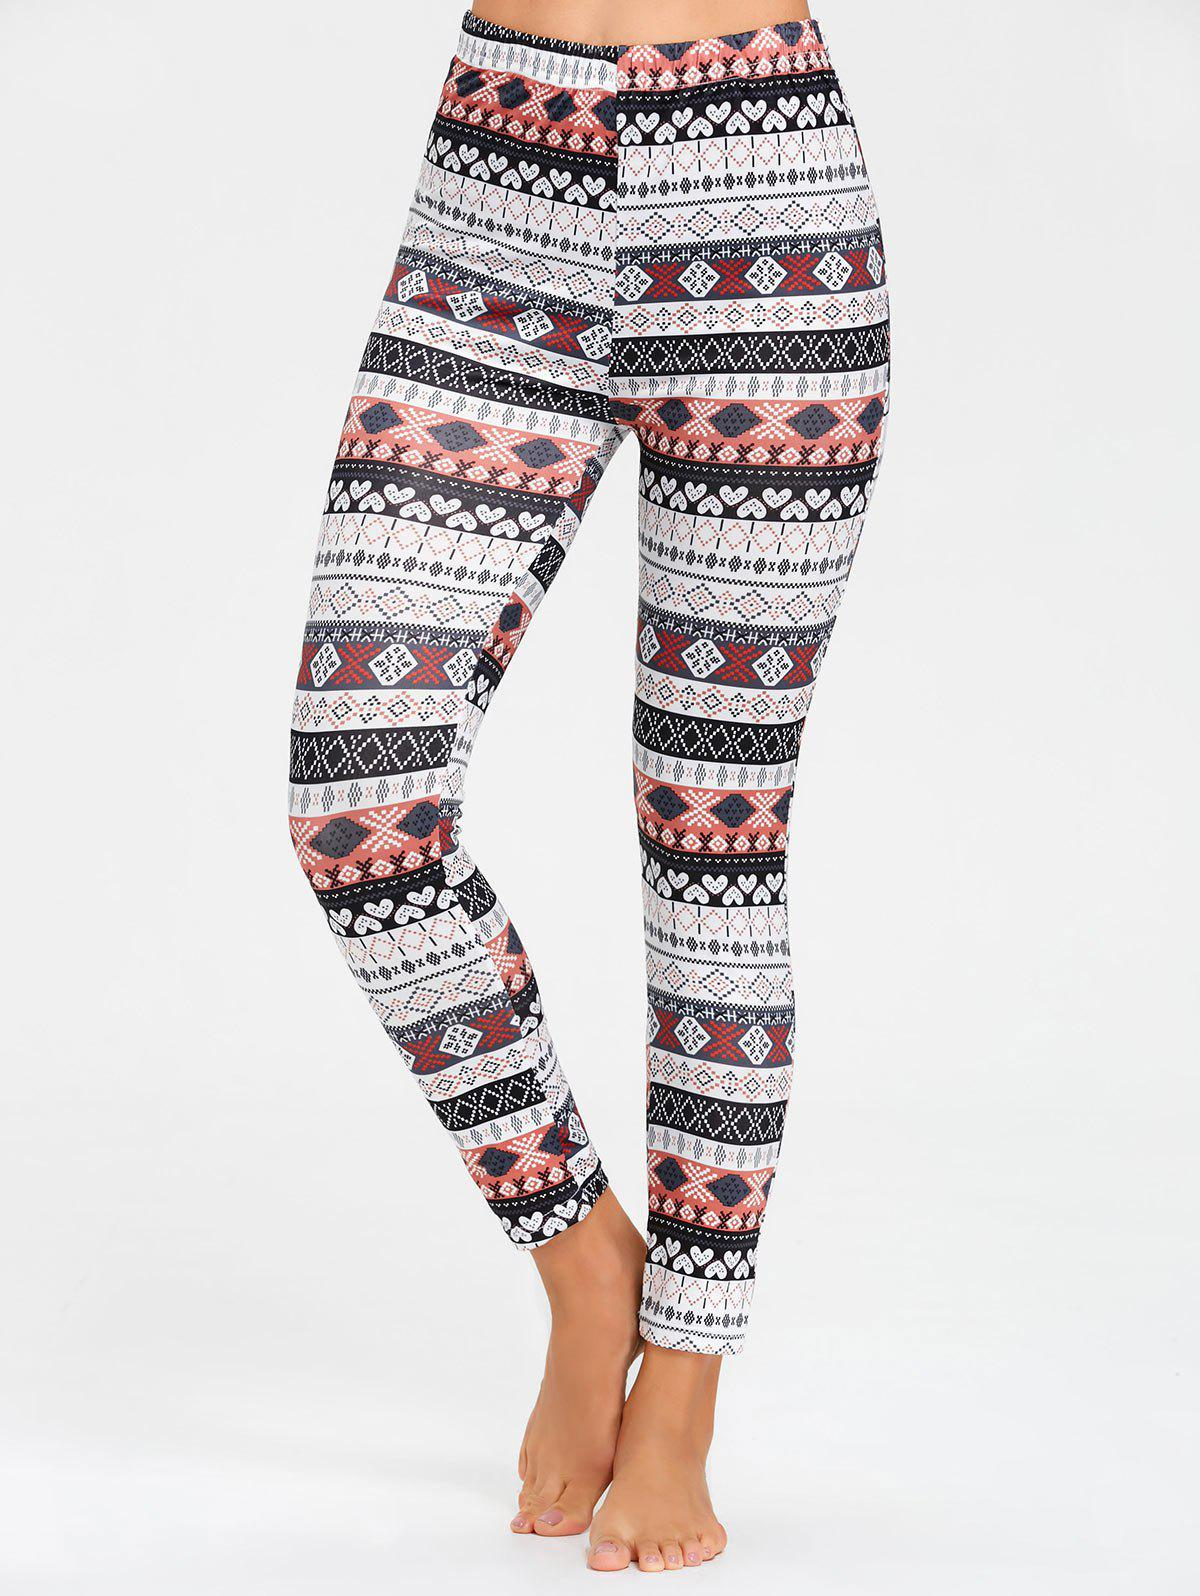 Leggings Pyjama Skinny Imprimé - multicolore XL